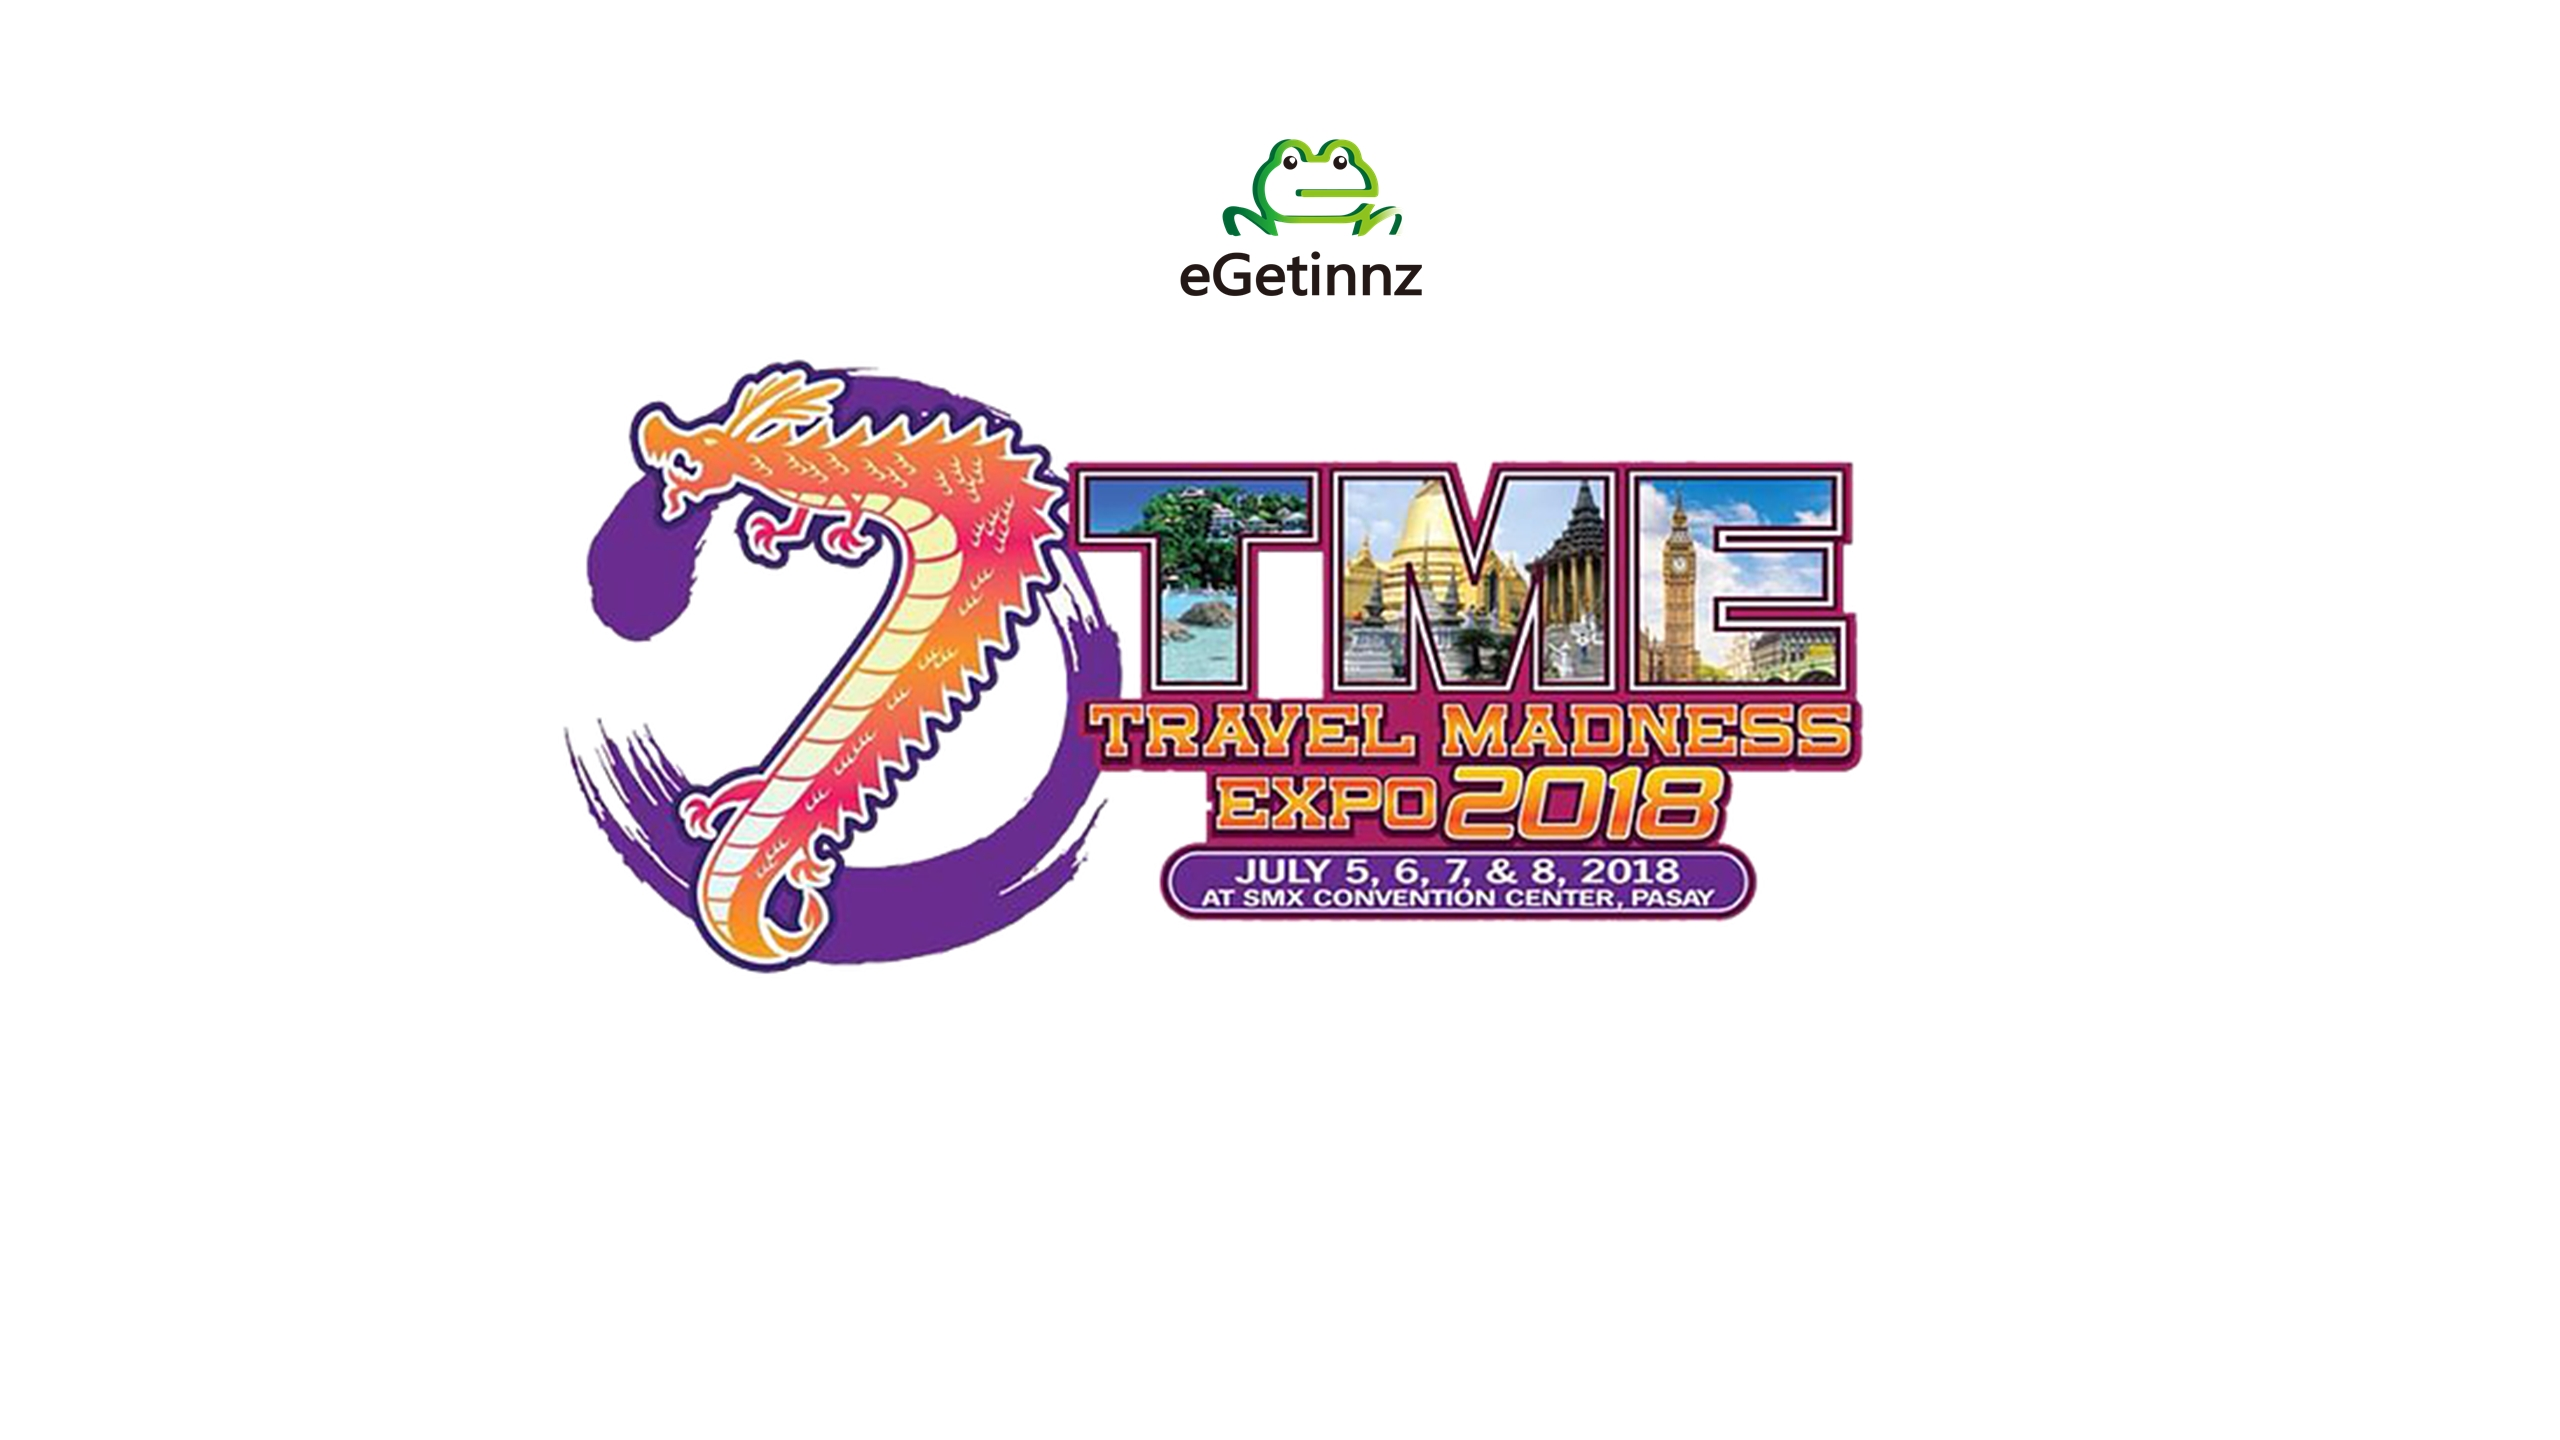 eGetinnz attends the Travel Madness Expo 2018